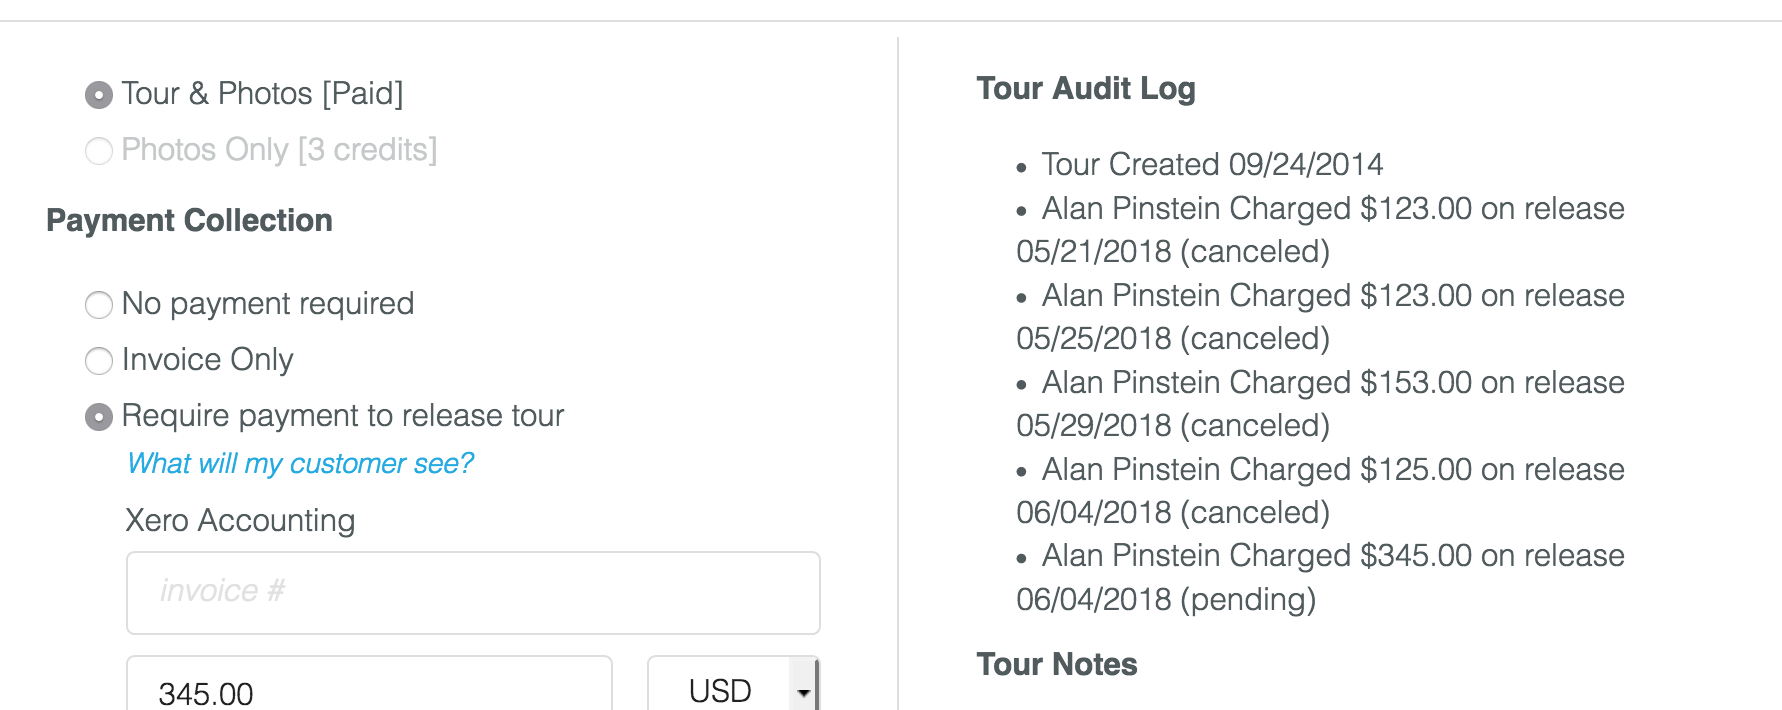 tour_audit_log.png